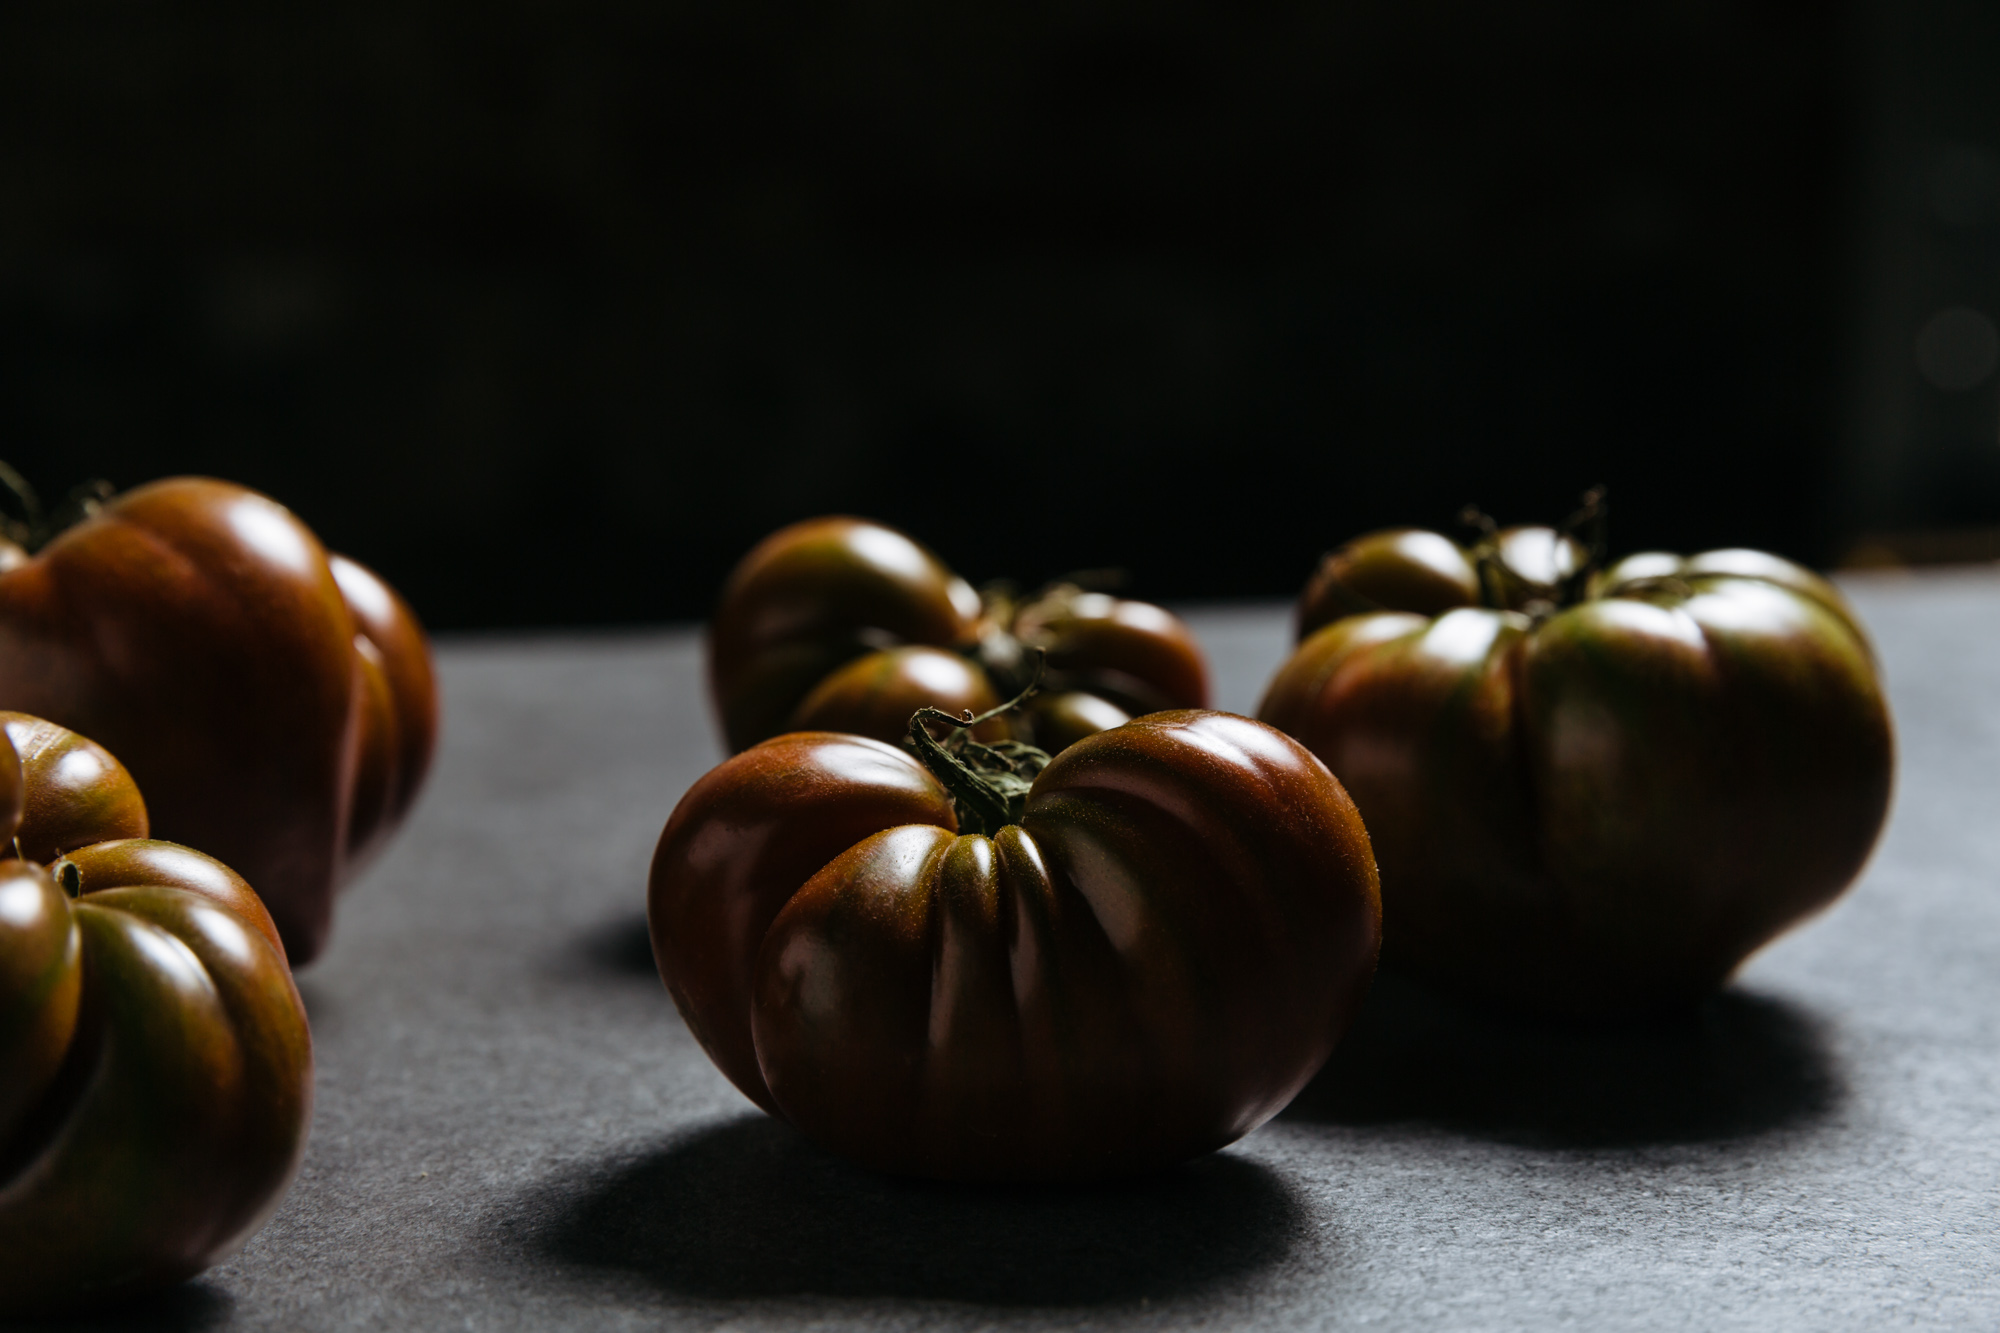 moody-food-photography-tomatoes-tabletop